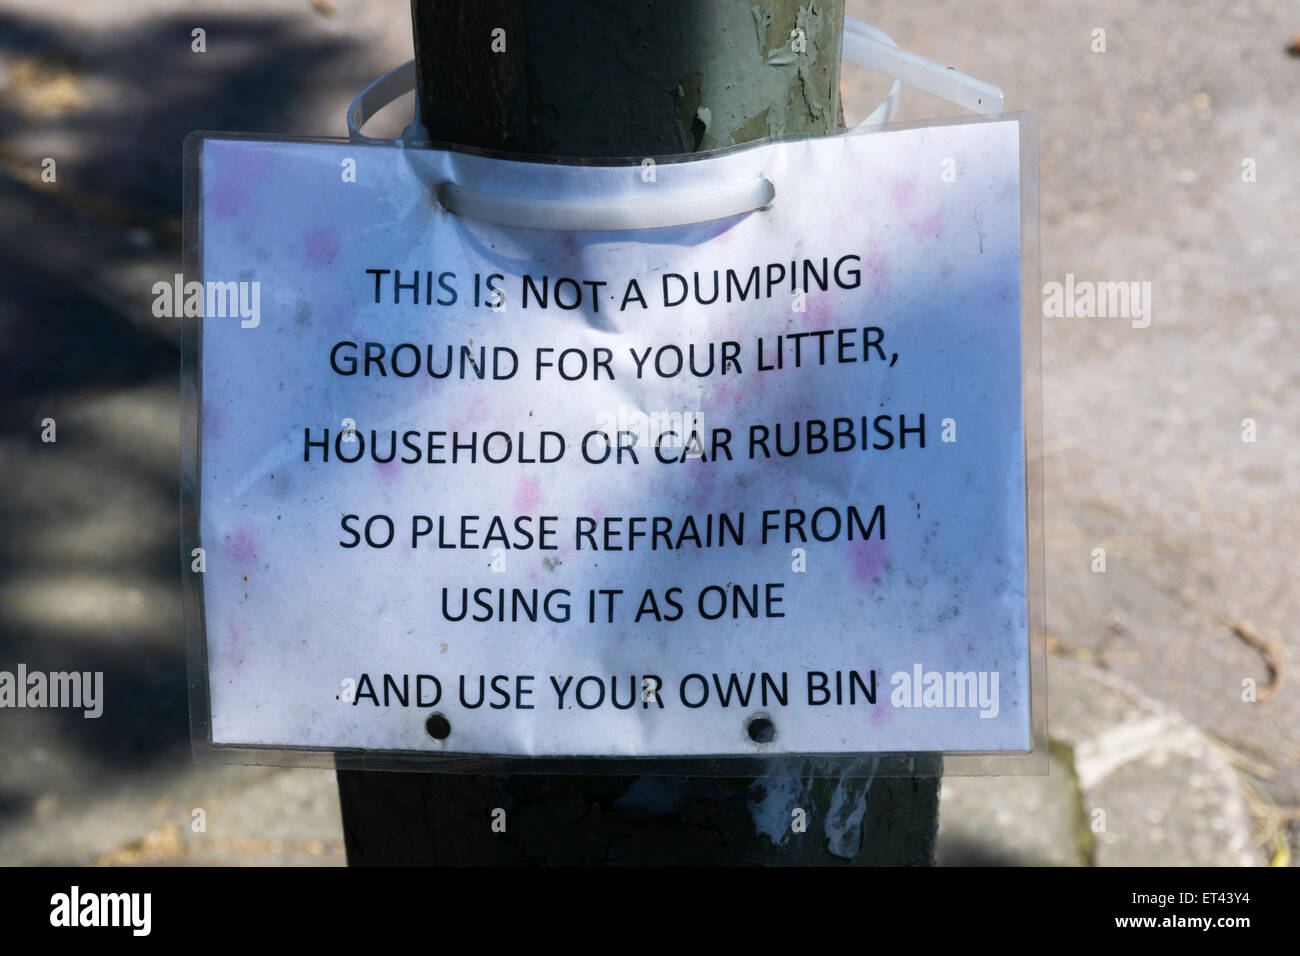 A homemade sign asking people to take their litter home and not dump it on the ground. - Stock Image